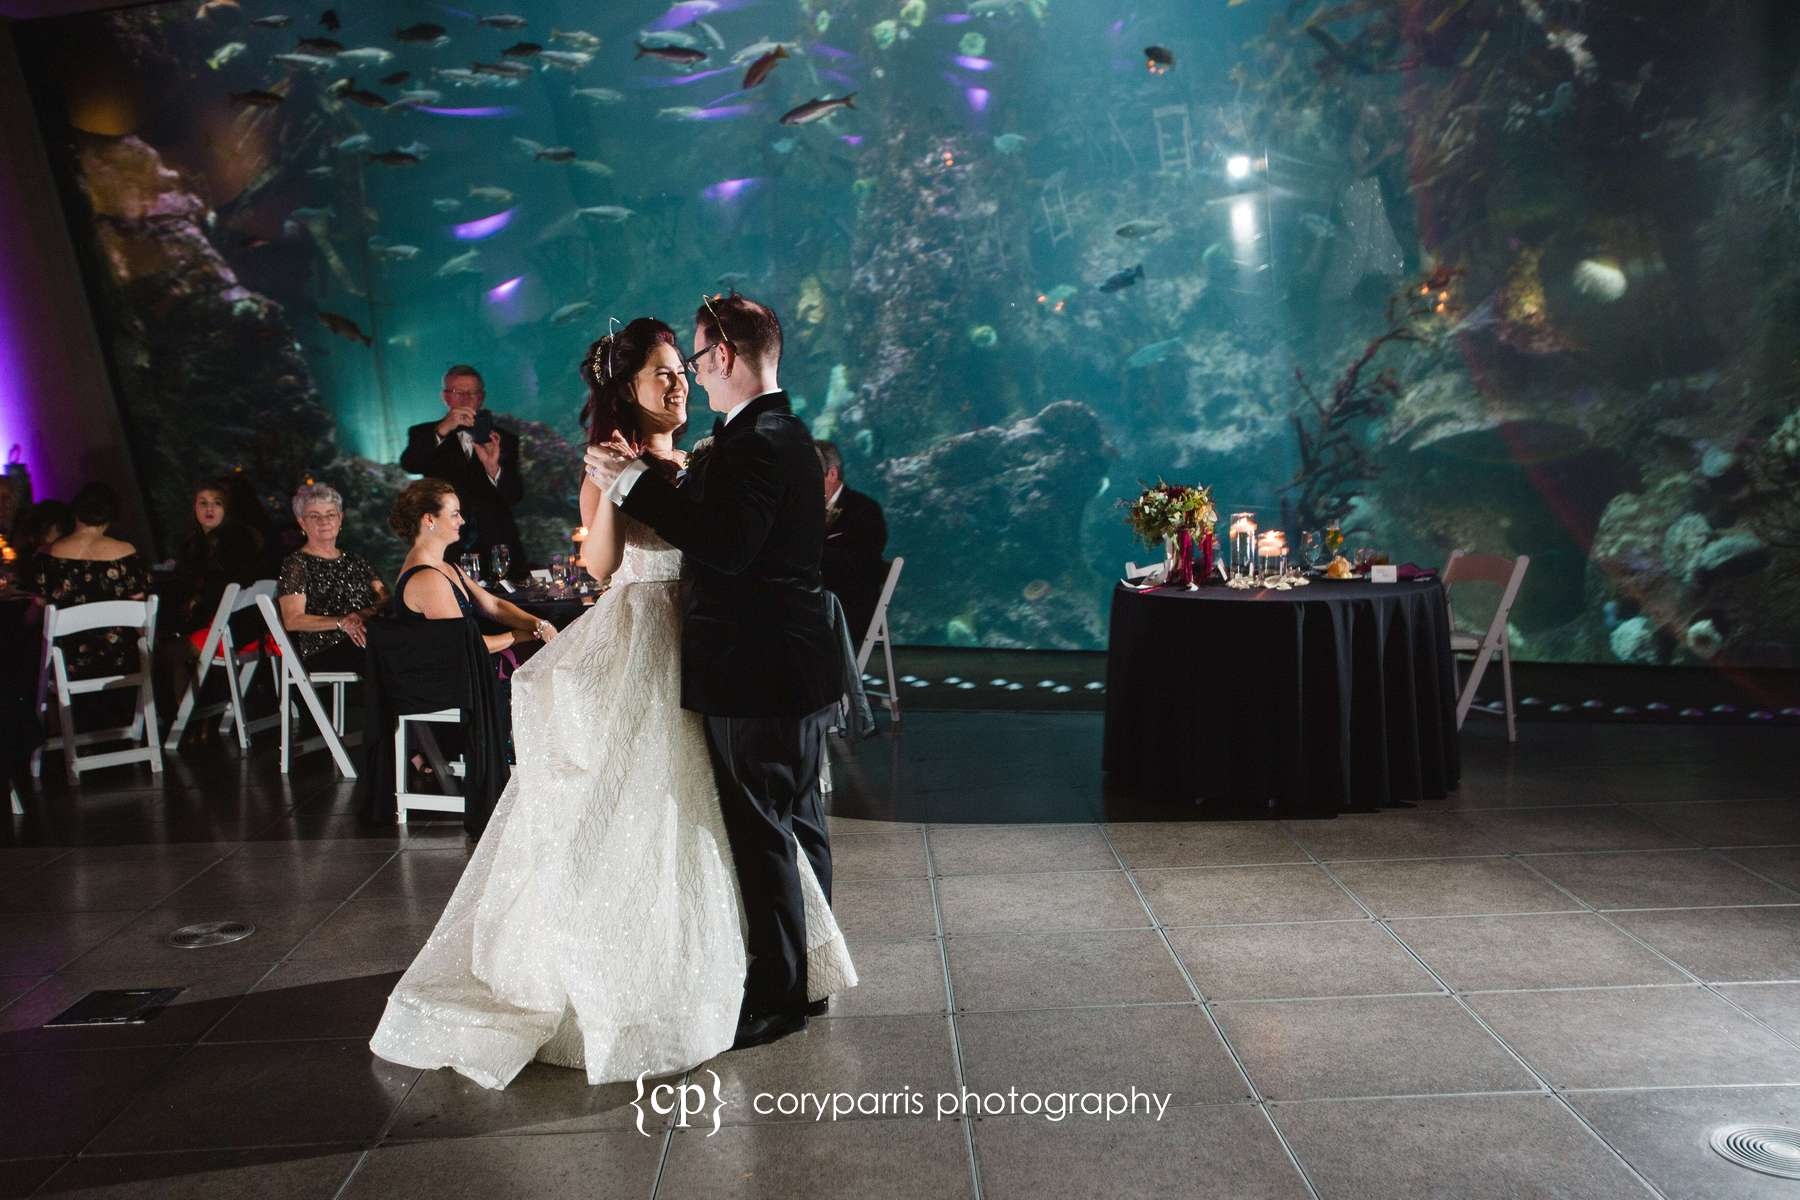 First dance with the big tank at the Seattle Aquarium in the background.